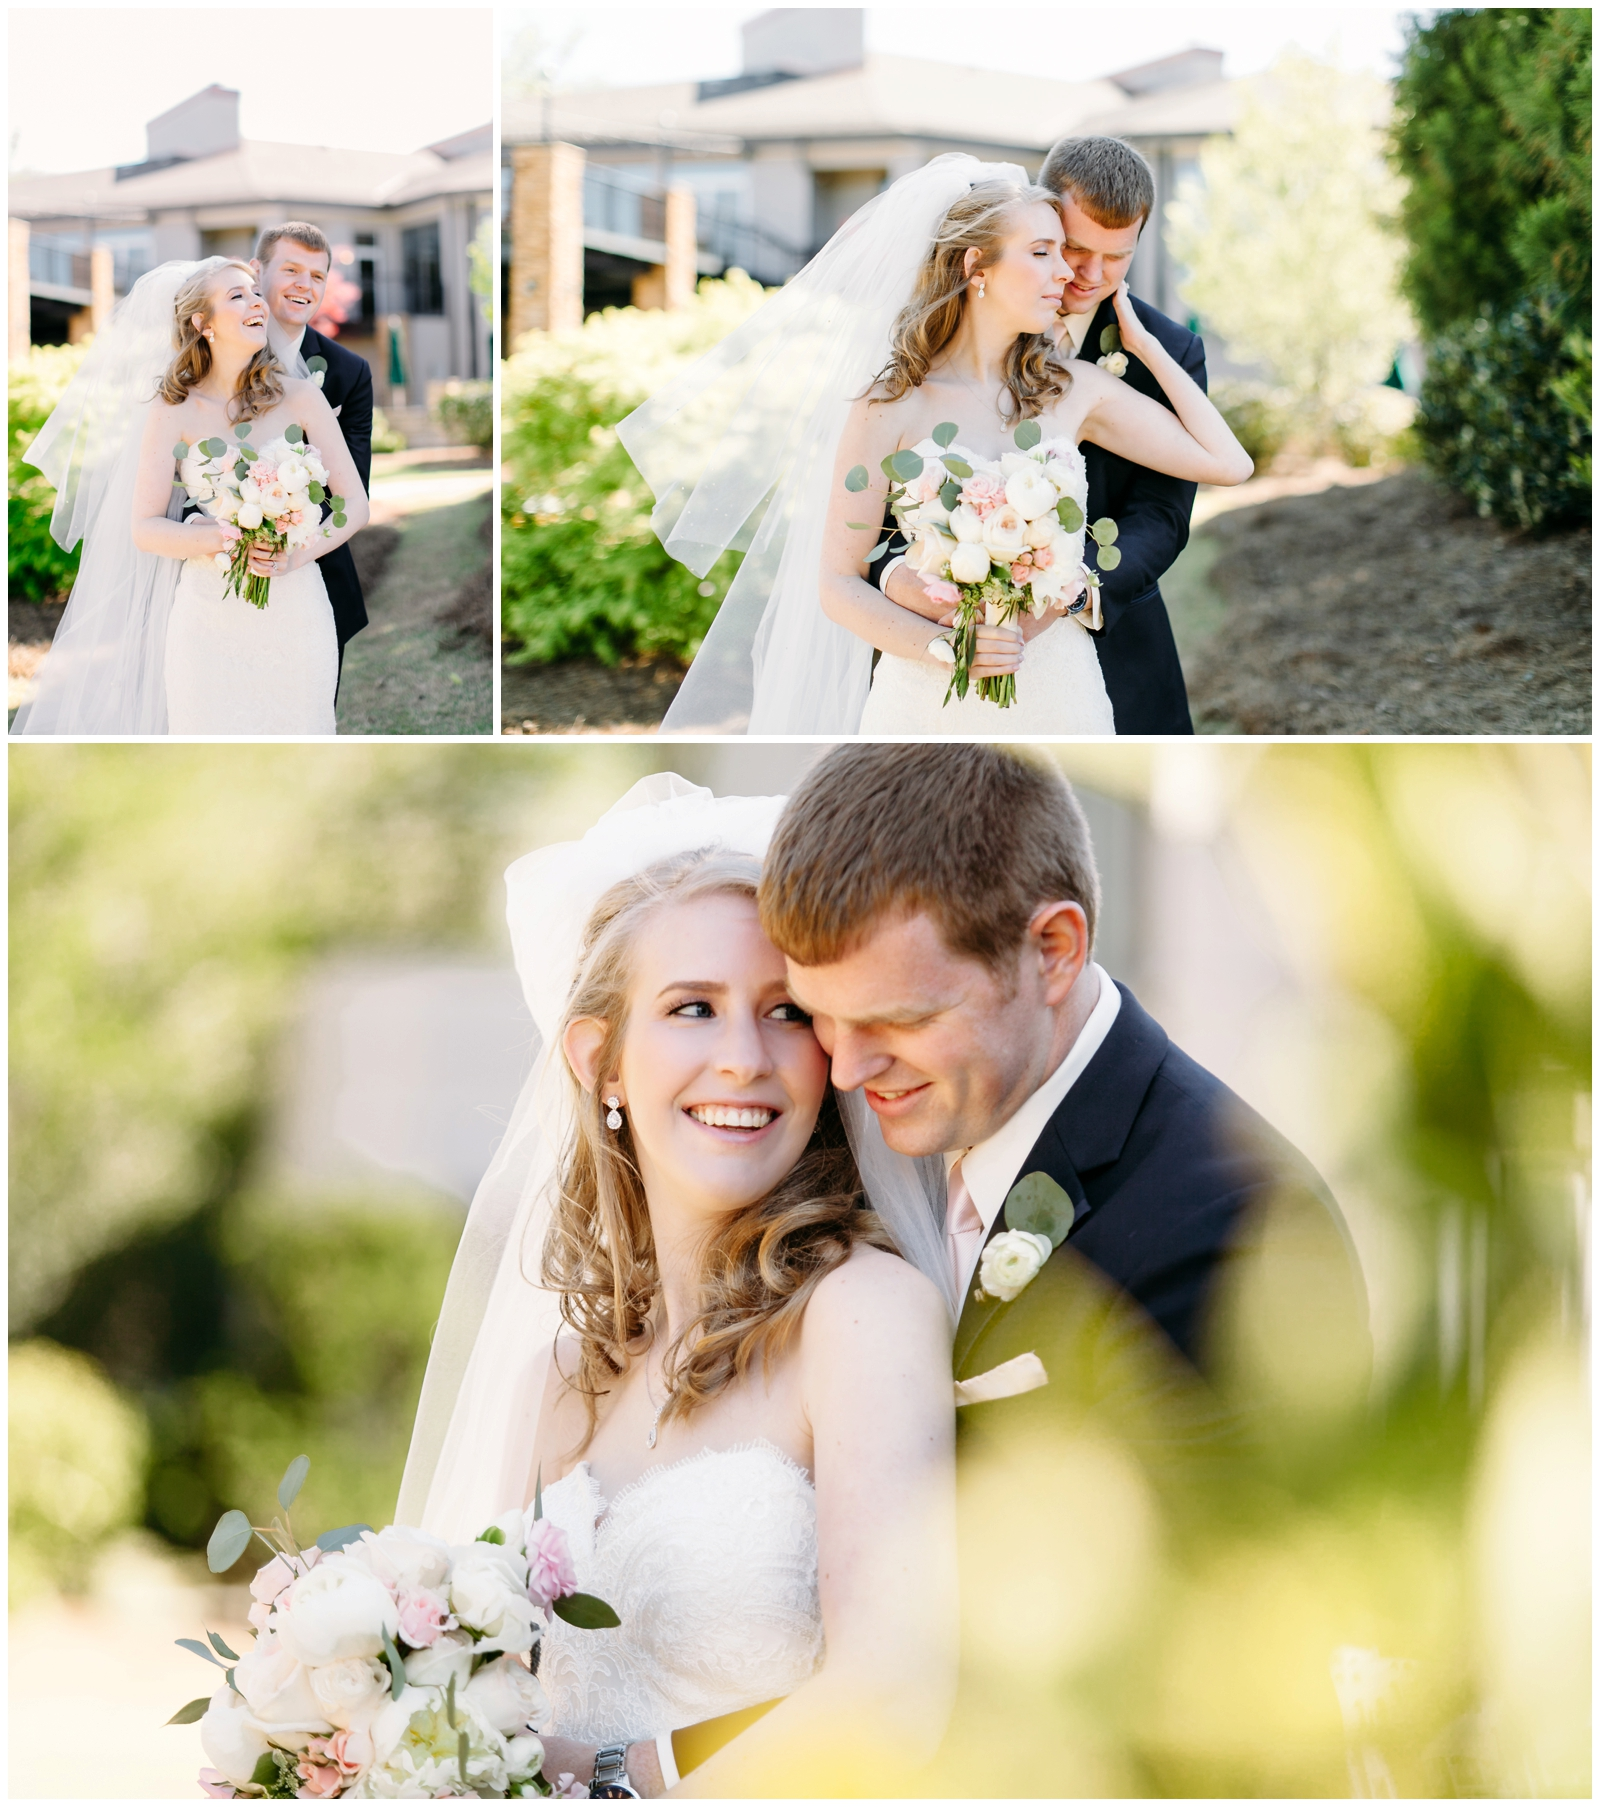 Morgan & Kyle_RoswellWedding_ArdentStory_0015